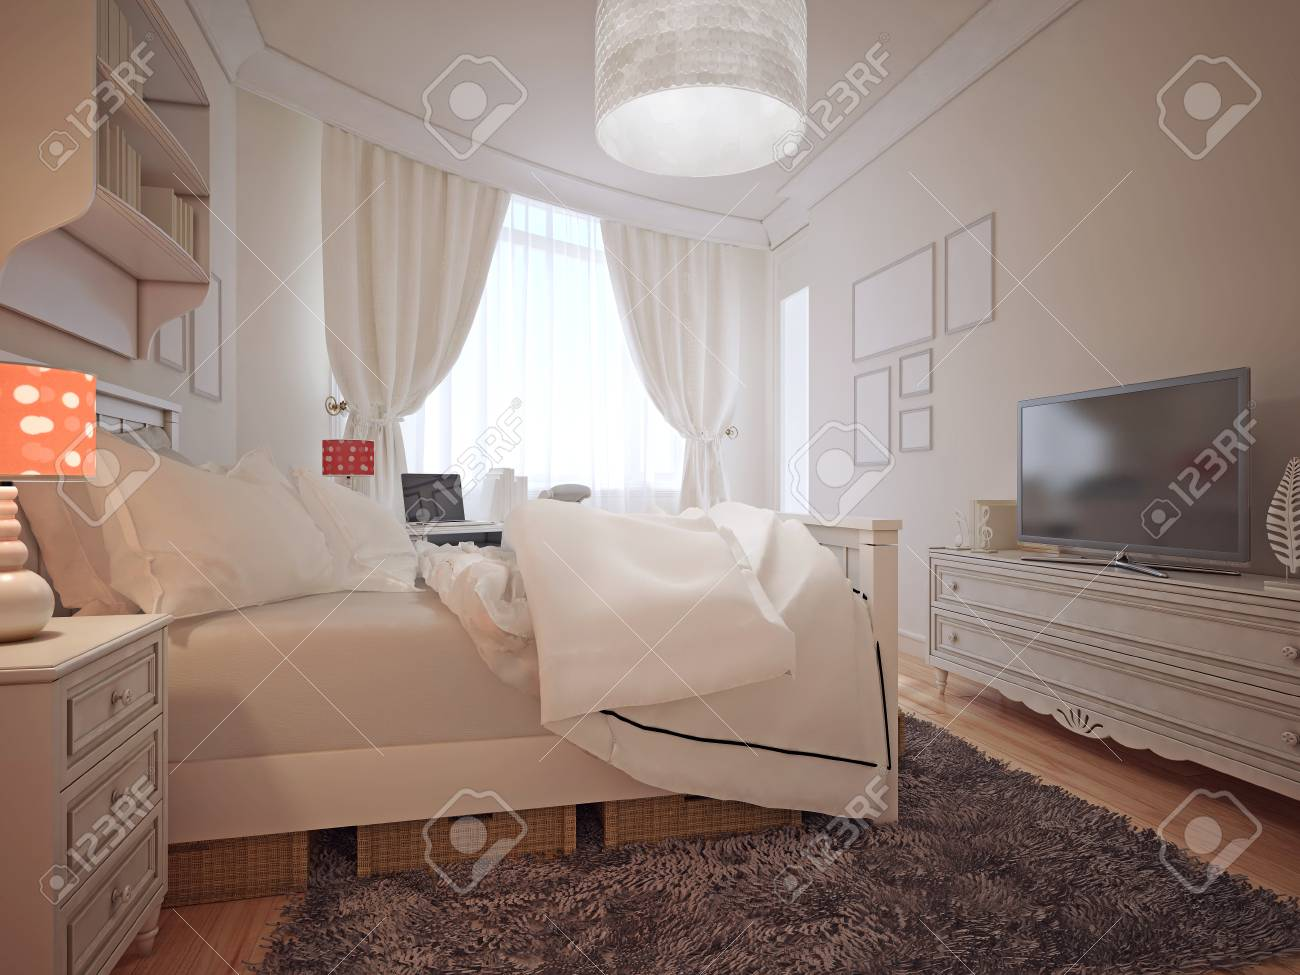 Luxury Bedroom Mediterranean Style A Spacious Bedroom With A Stock Photo Picture And Royalty Free Image Image 46188581